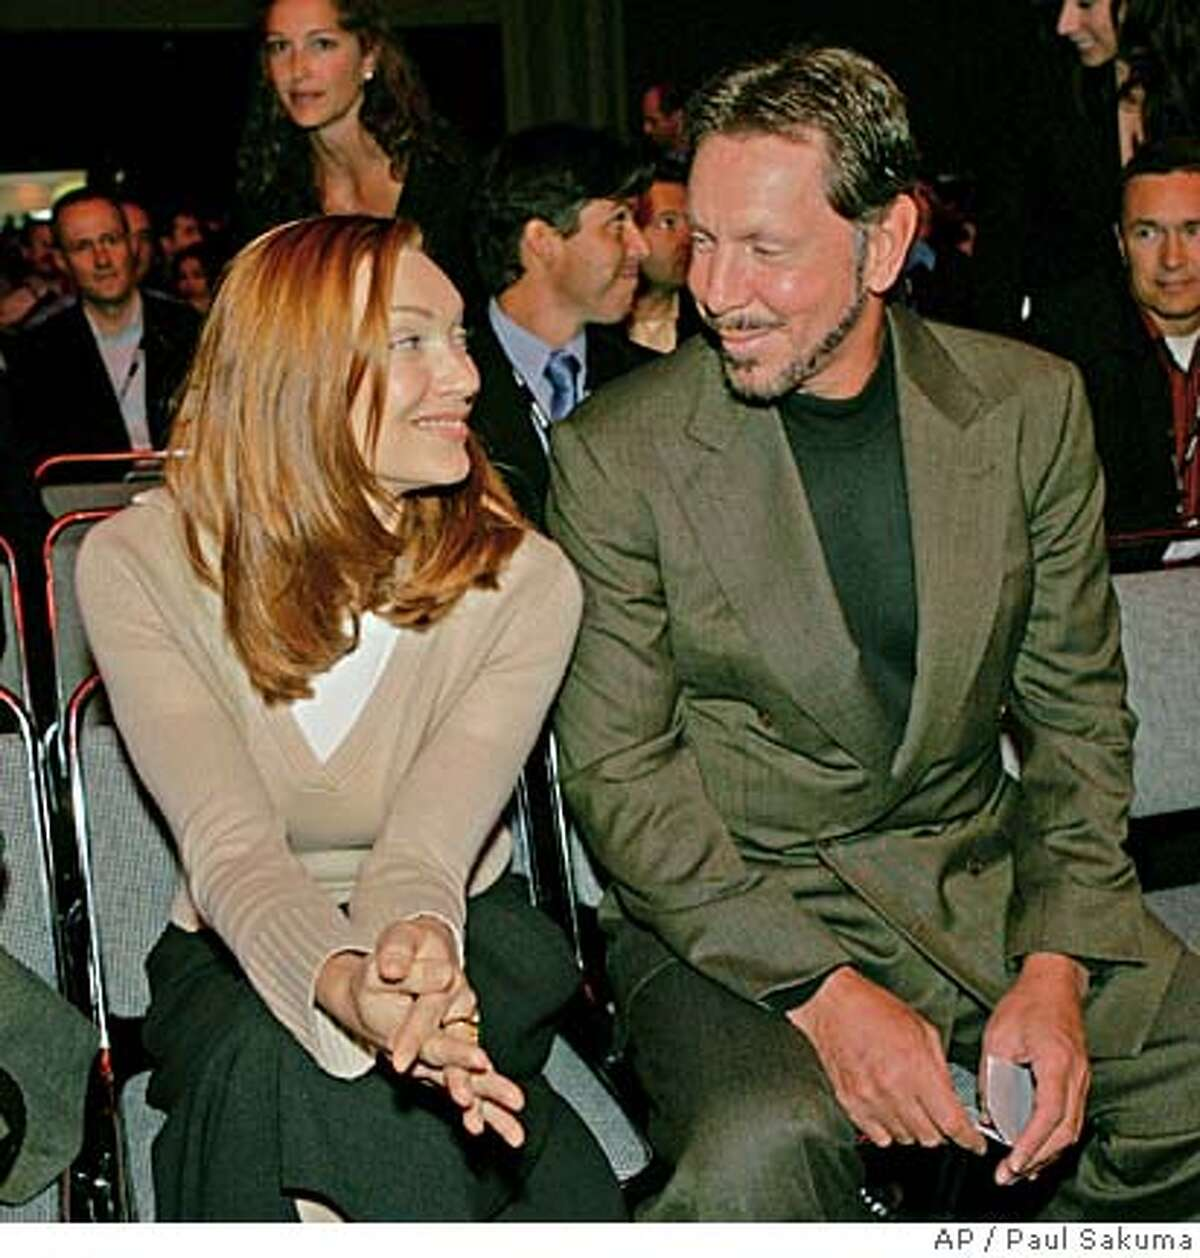 Oracle chief executive Larry Ellison smiles at his wife, Melanie Ellison, before he gave a keynote address at the Oracle Open World Conference in San Francisco, Wednesday, Sept. 21, 2005. (AP Photo/Paul Sakuma)